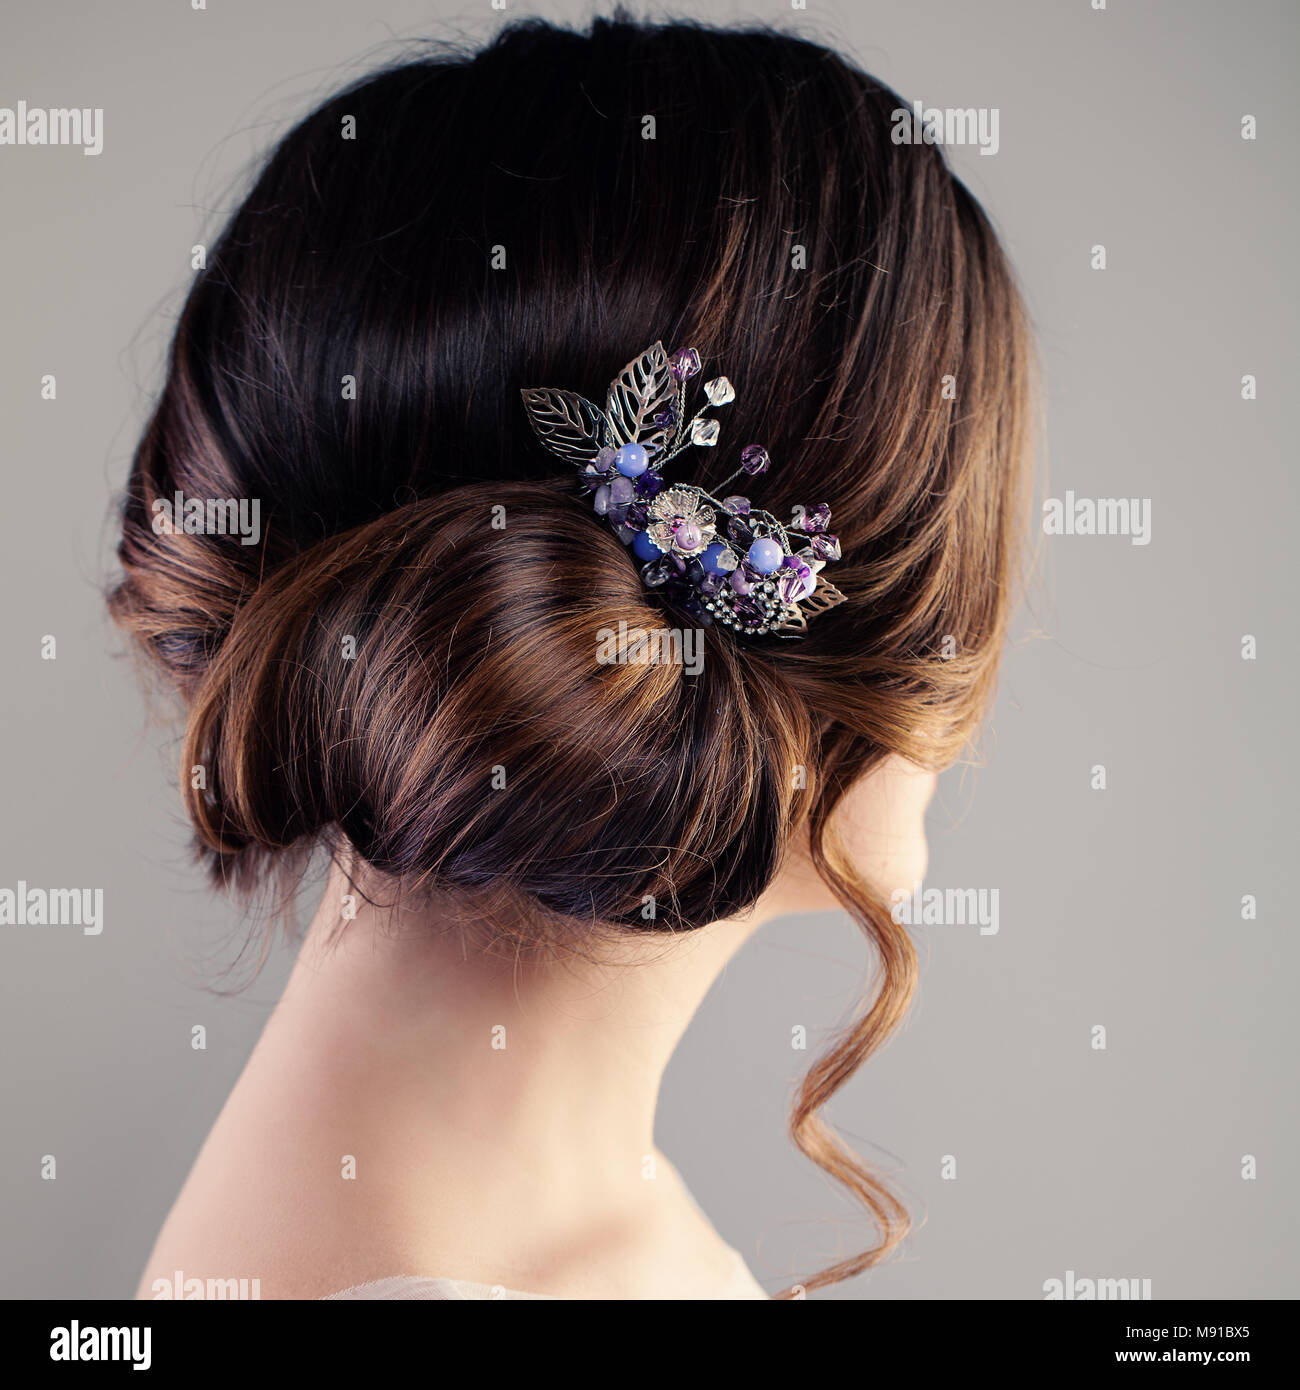 Bridal Or Prom Hairstyle Beautiful Woman With Brown Hair And